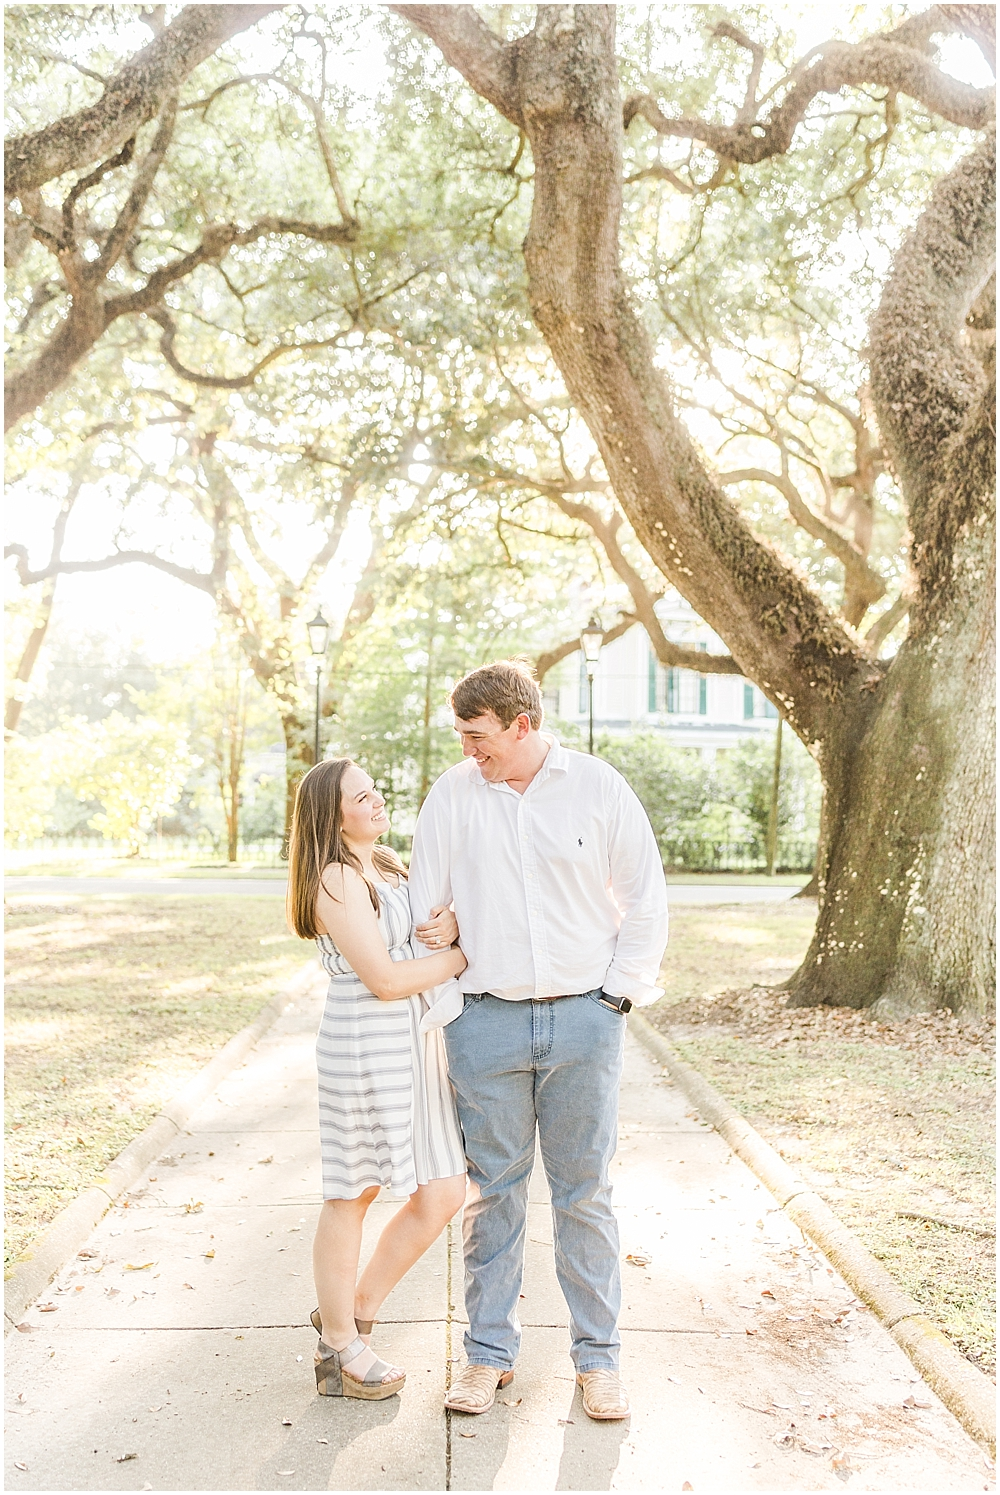 Ashton-Clark-Photography-Wedding-Portrait-Family-Photographer-Mobile-Alabama_0387.jpg